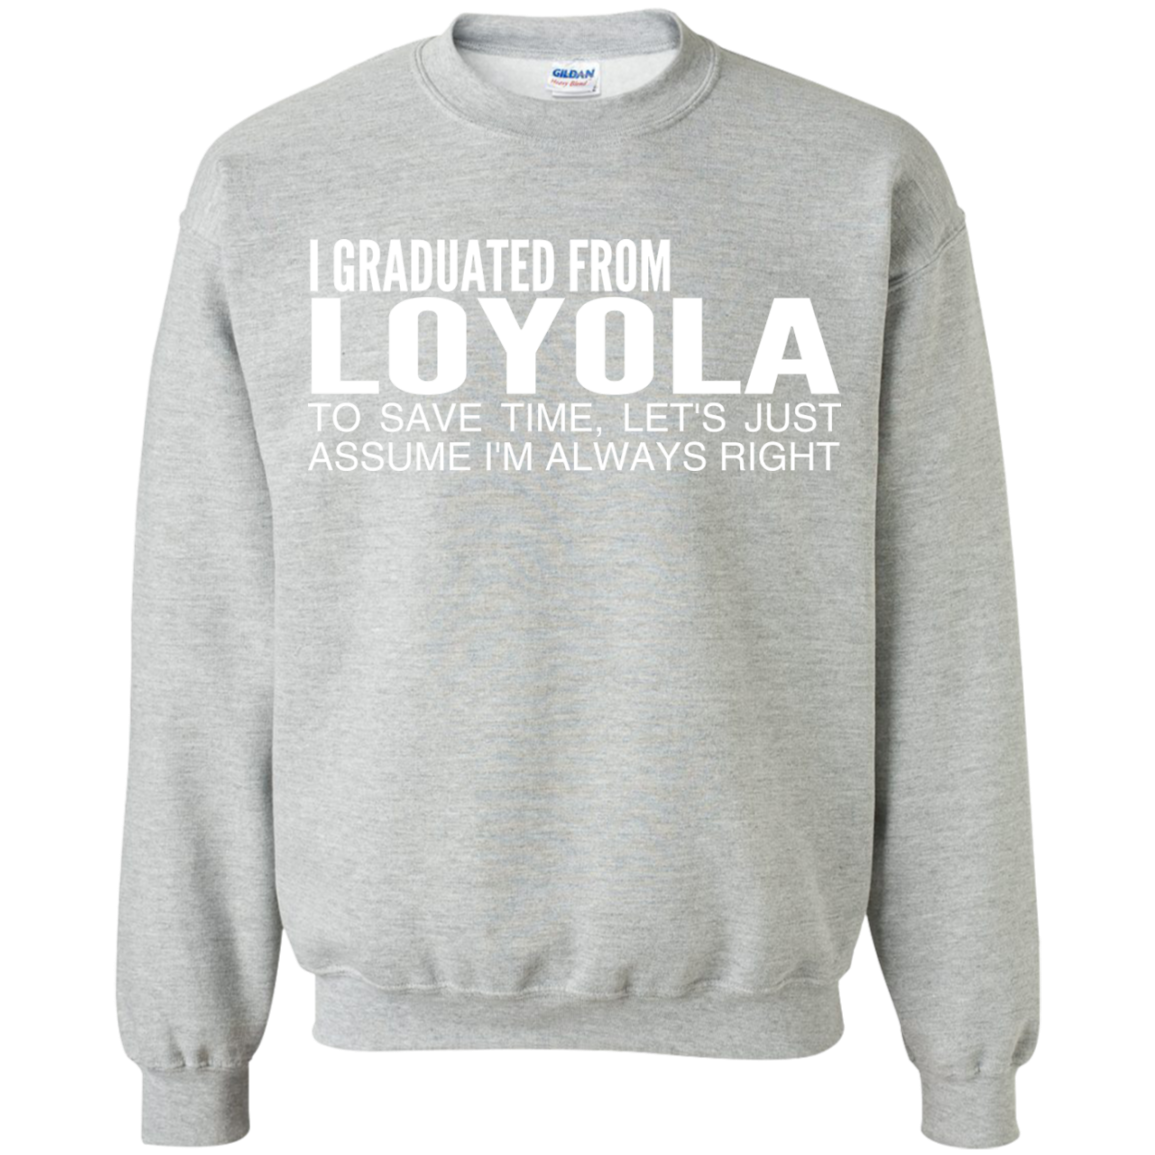 I Graduated From Loyola To Save Time Lets Just Assume Im Always Right Sweatshirts